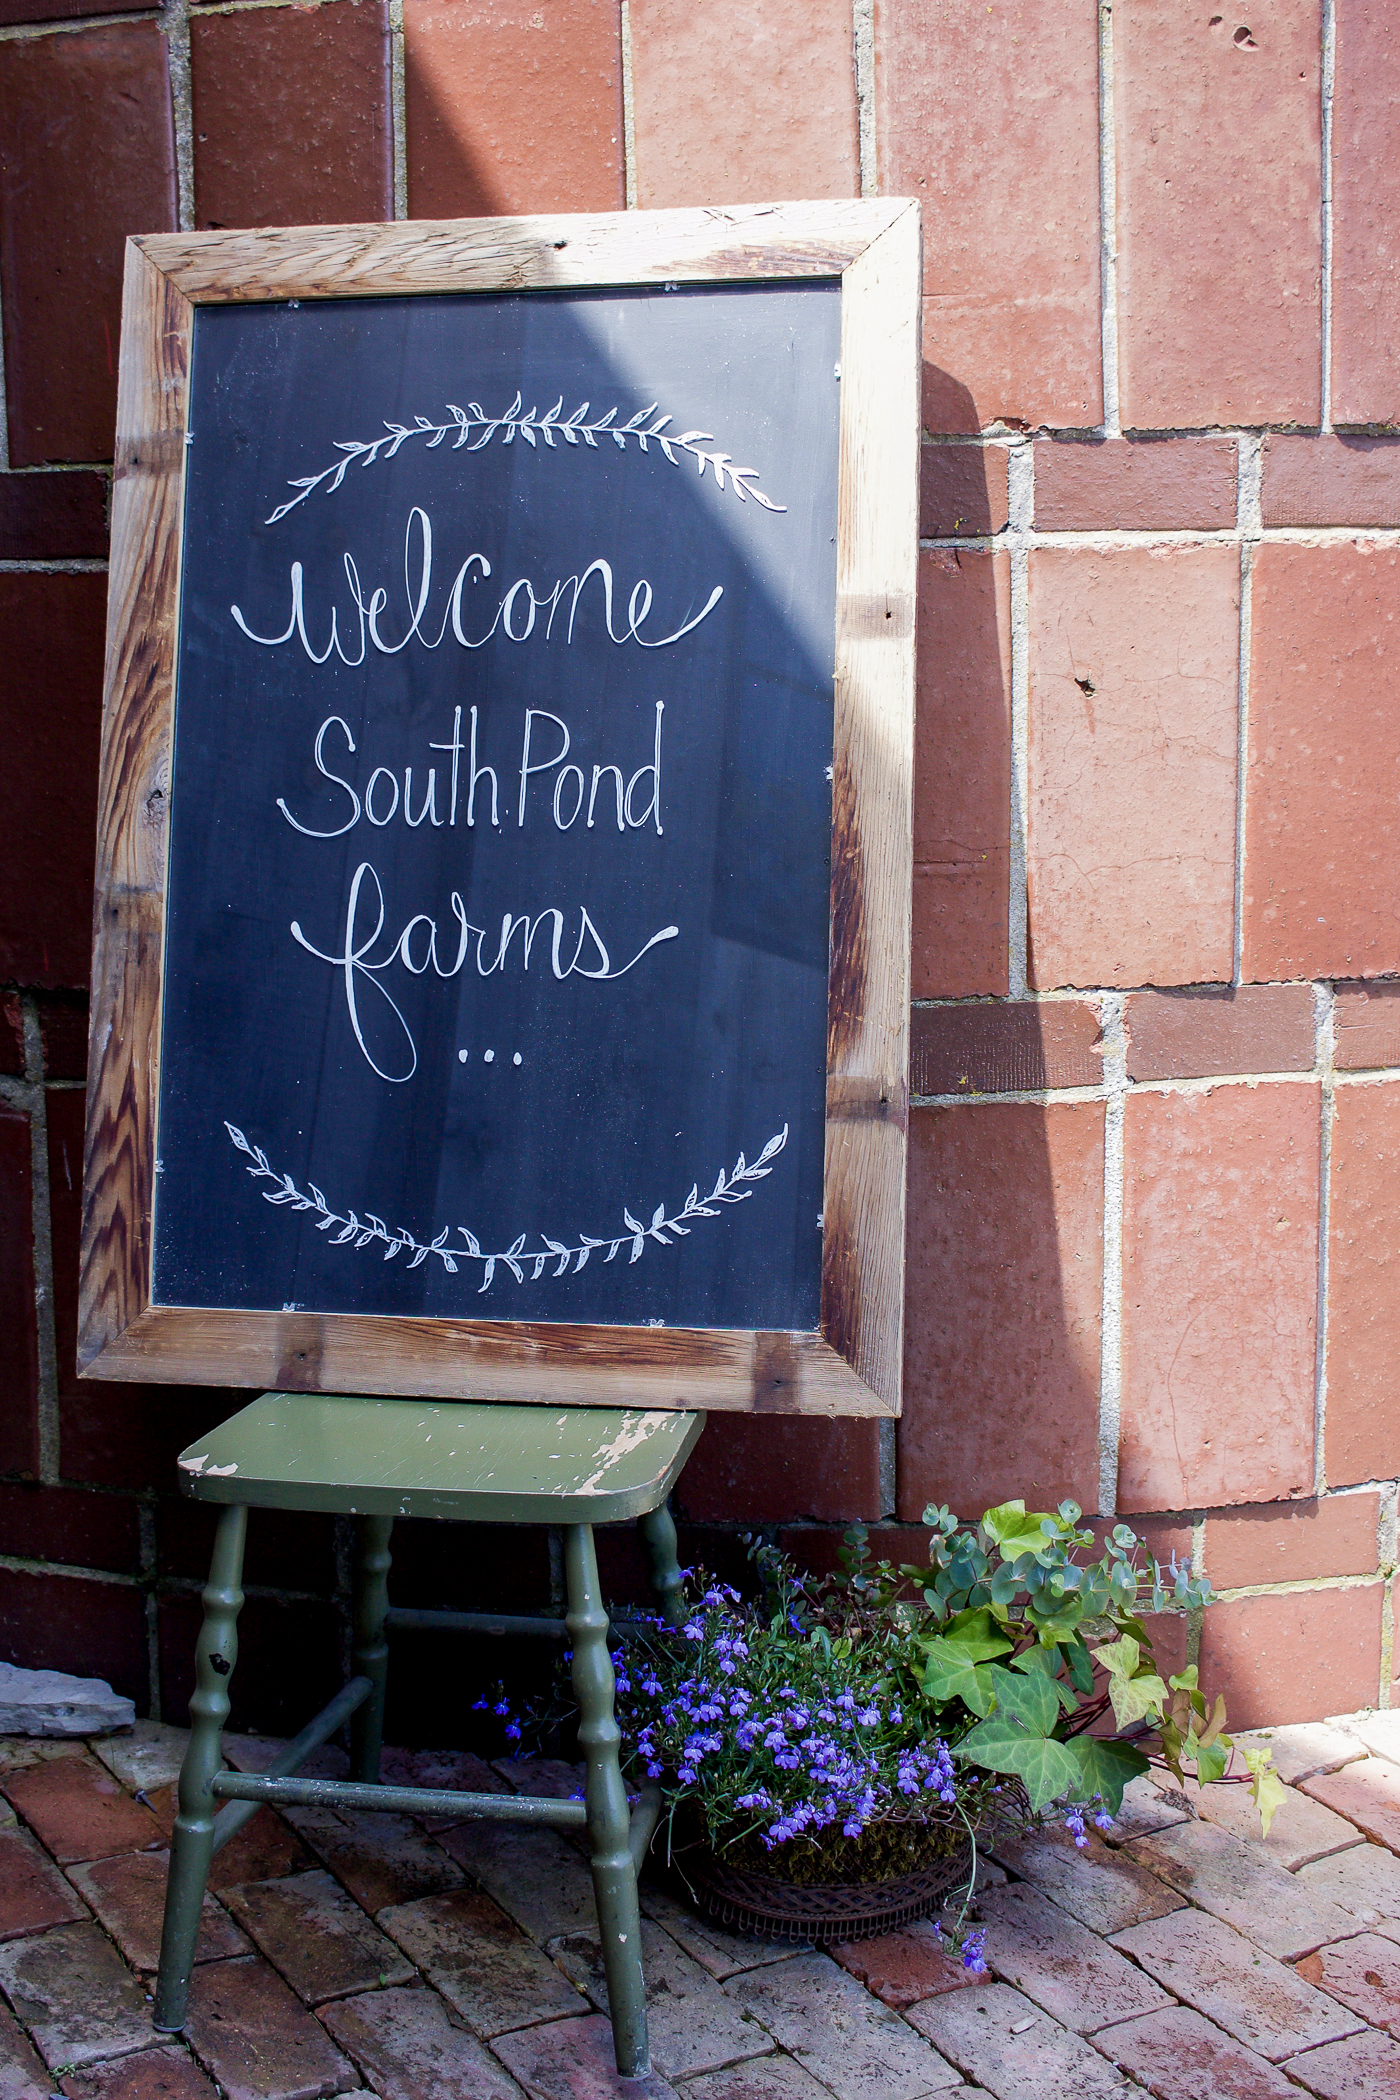 Hand-written chalkboard sign, welcoming the media to South Pond Farms